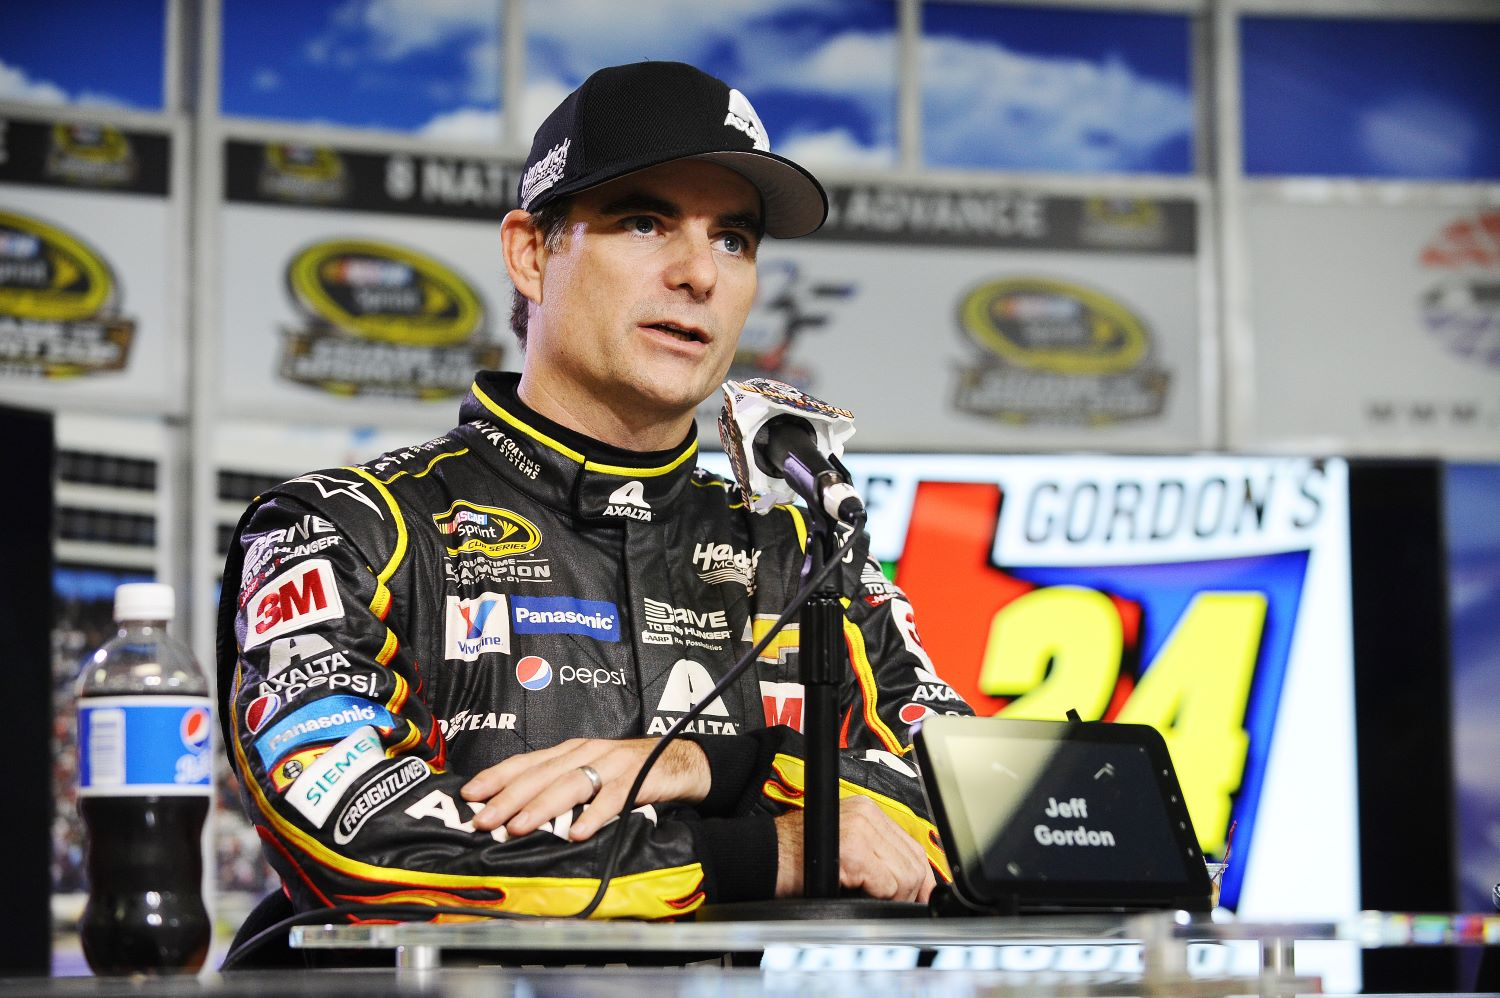 Jeff Gordon should have an extra $15 million in his bank account, but his ex-wife is responsible for the NASCAR legend's financial loss.